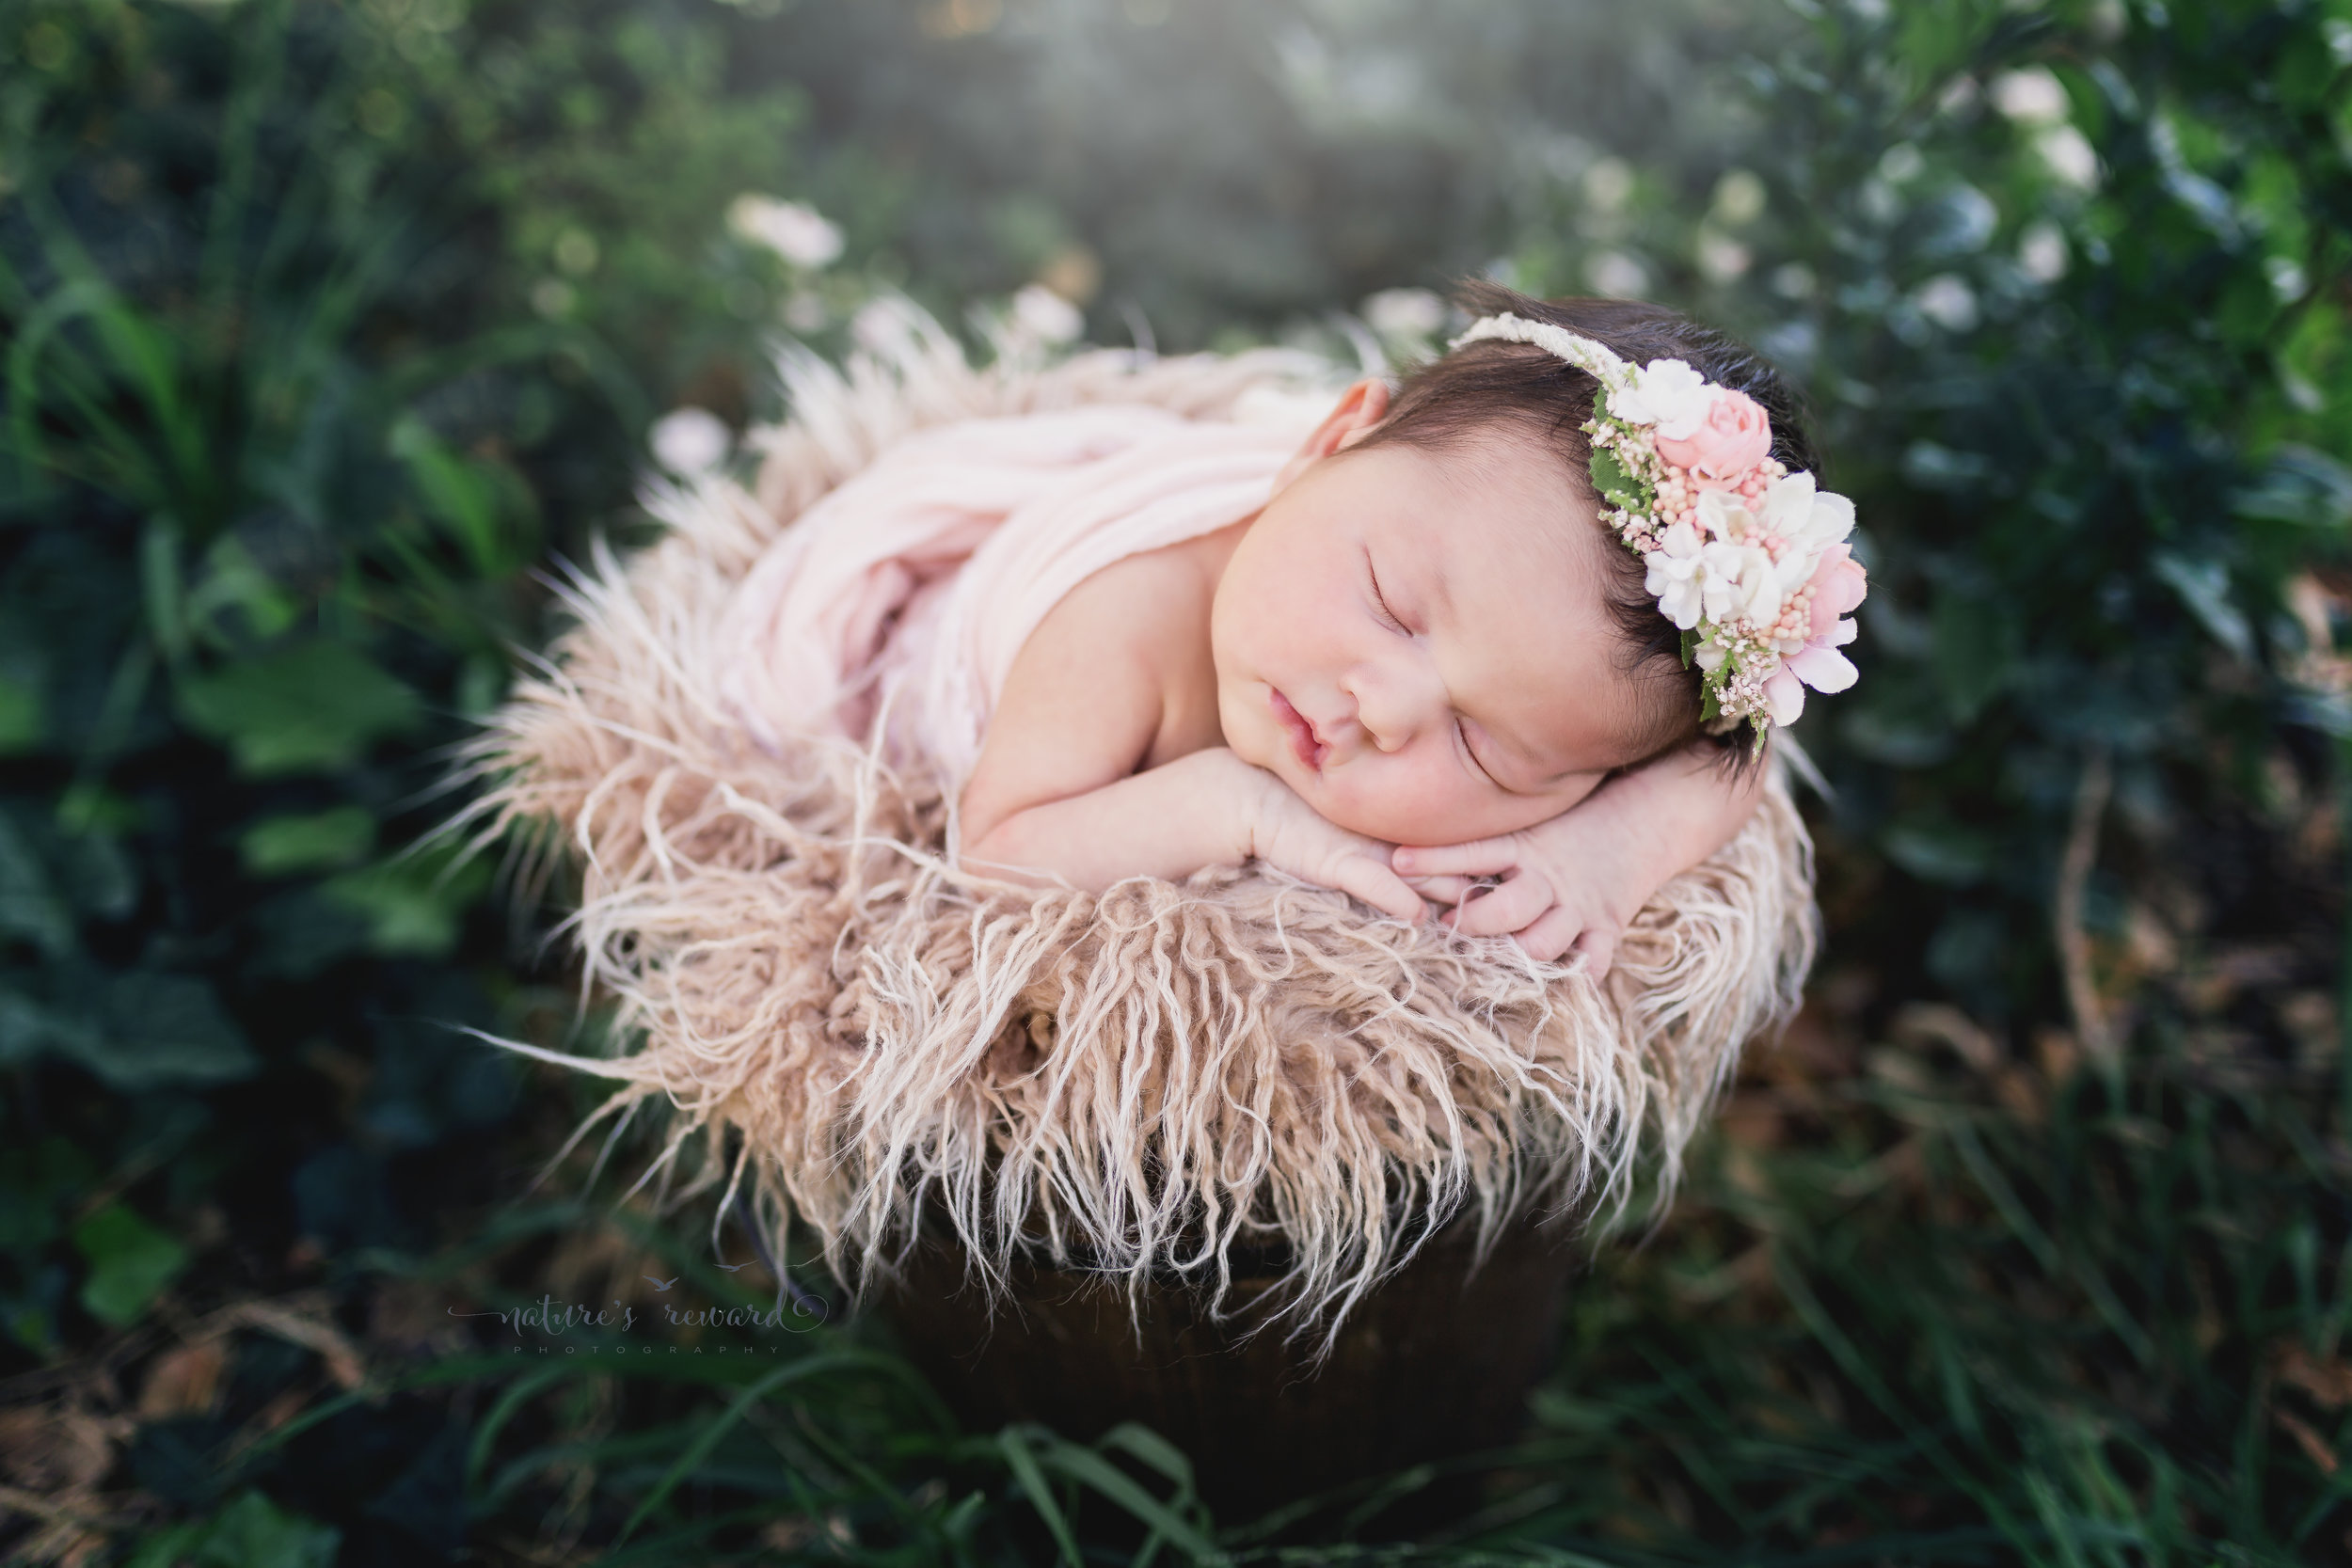 In this portrait this lovely newborn baby girl is wrapped in pink wearing a flower crown in a bucket of furs surrounded by ivy by Southern California Newborn and Family Photographer Nature's Reward Photography